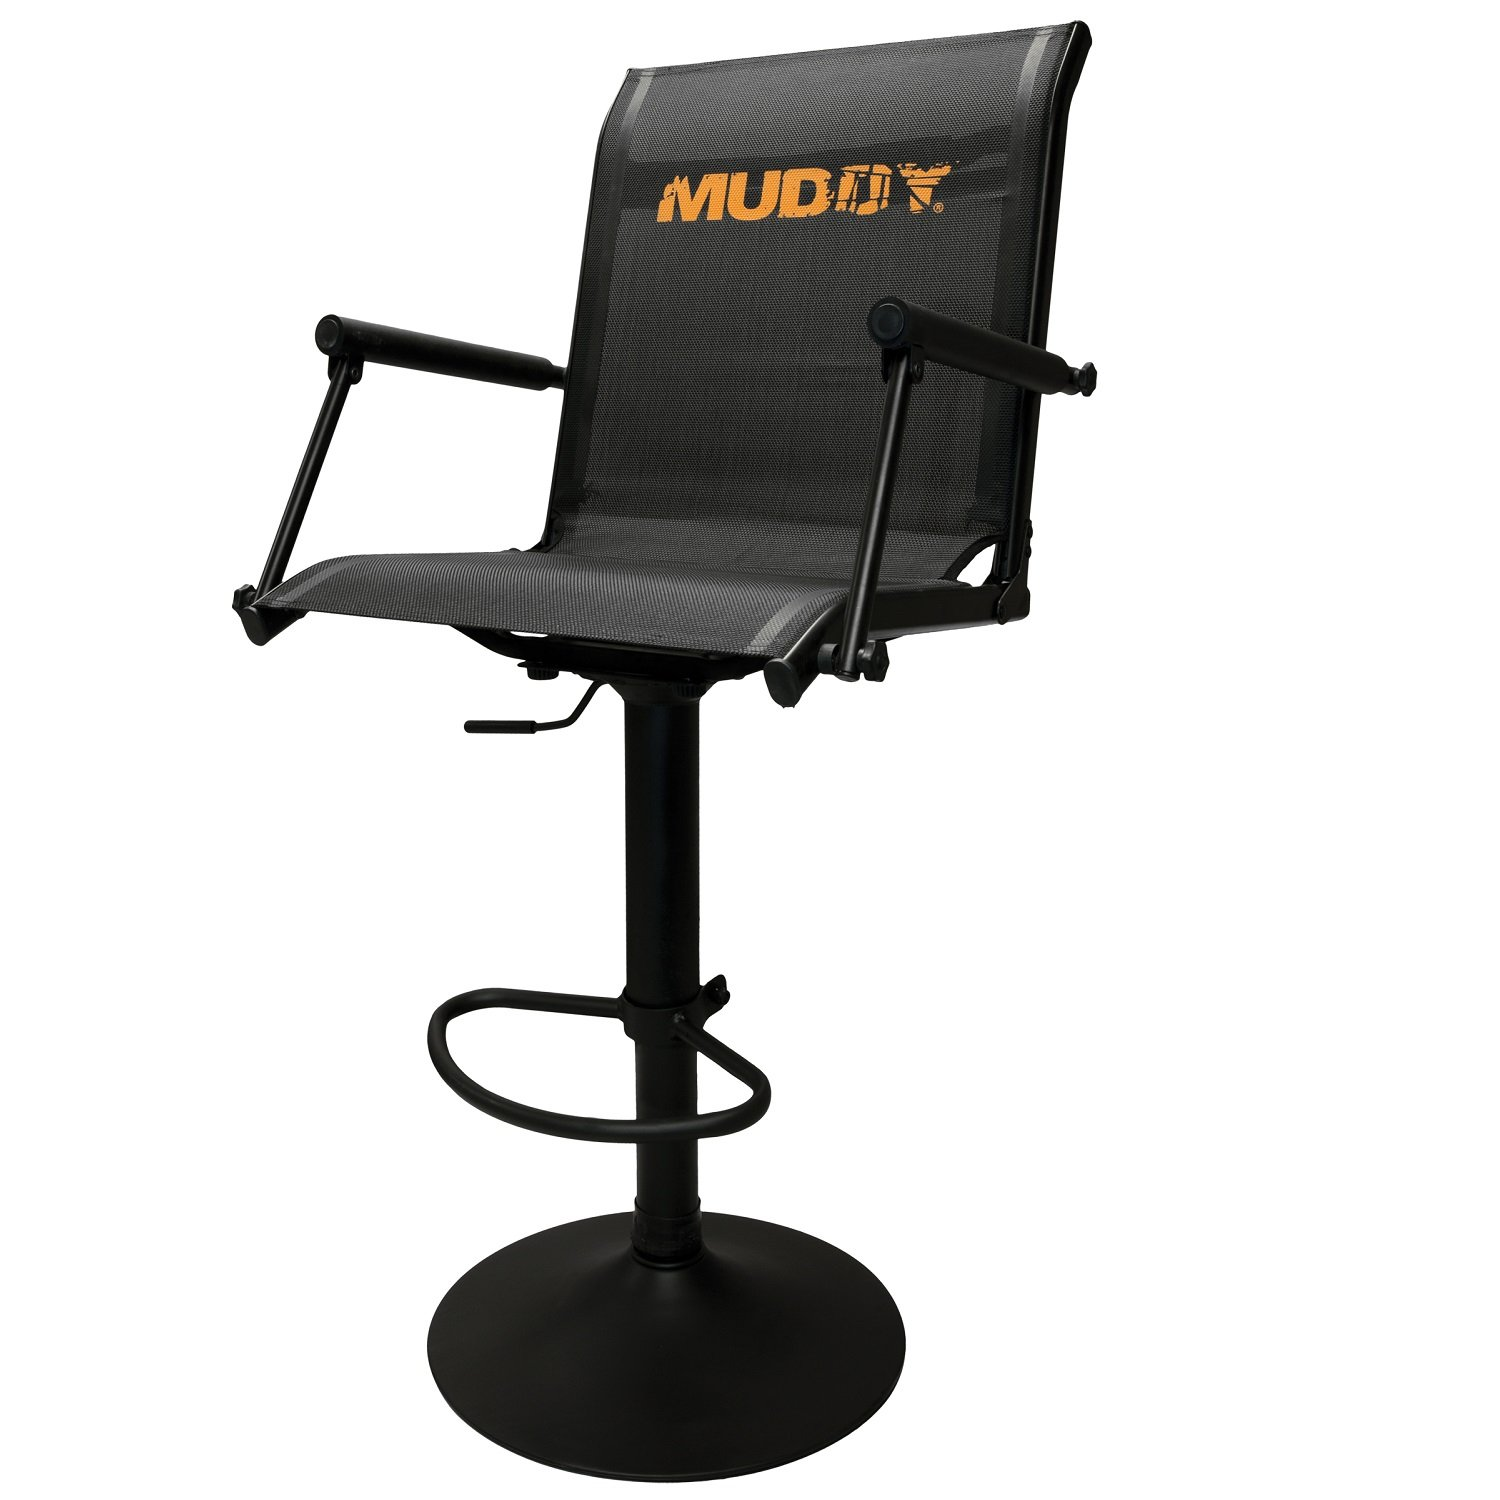 Amazon Muddy Swivel Ease Xtreme Chair Sports & Outdoors